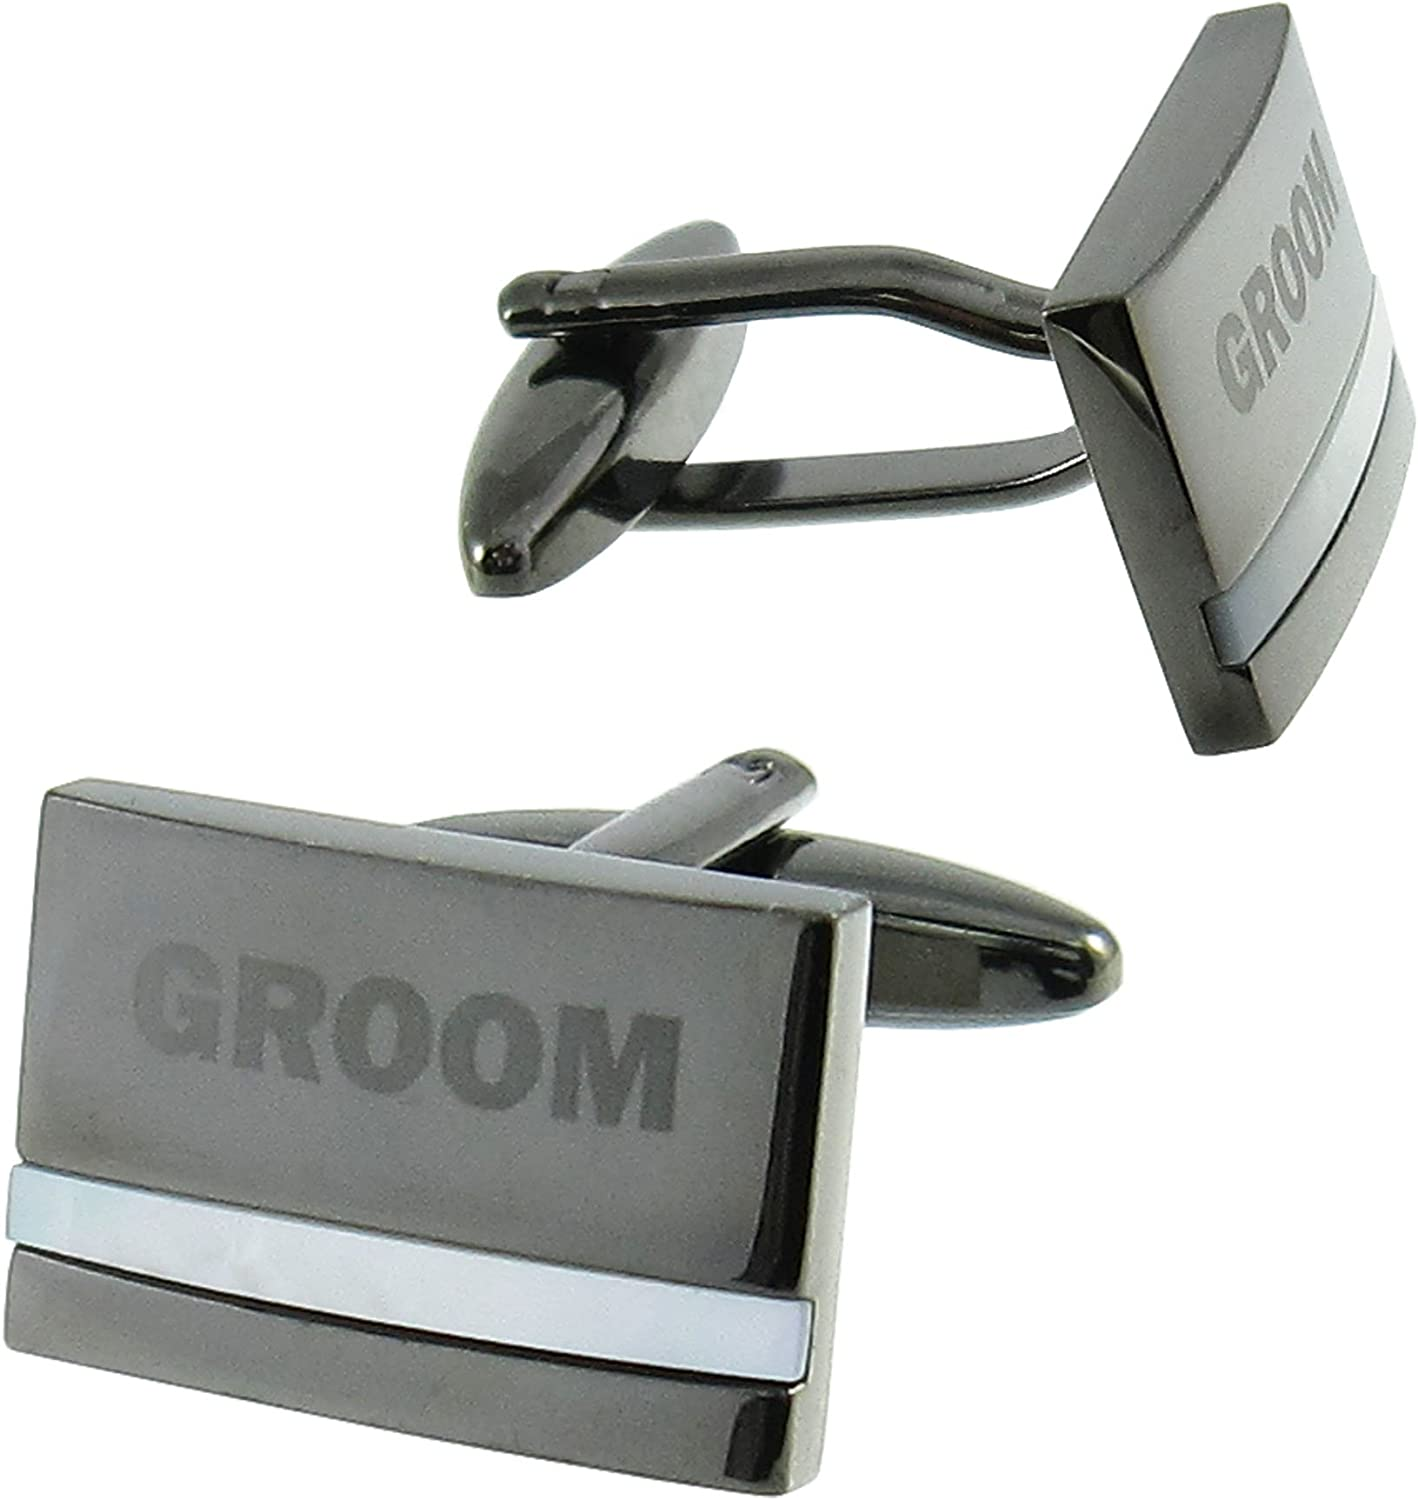 Cuff-Daddy Groom Cufflinks with Mother of Pearl Cuff Links with Presentation Box